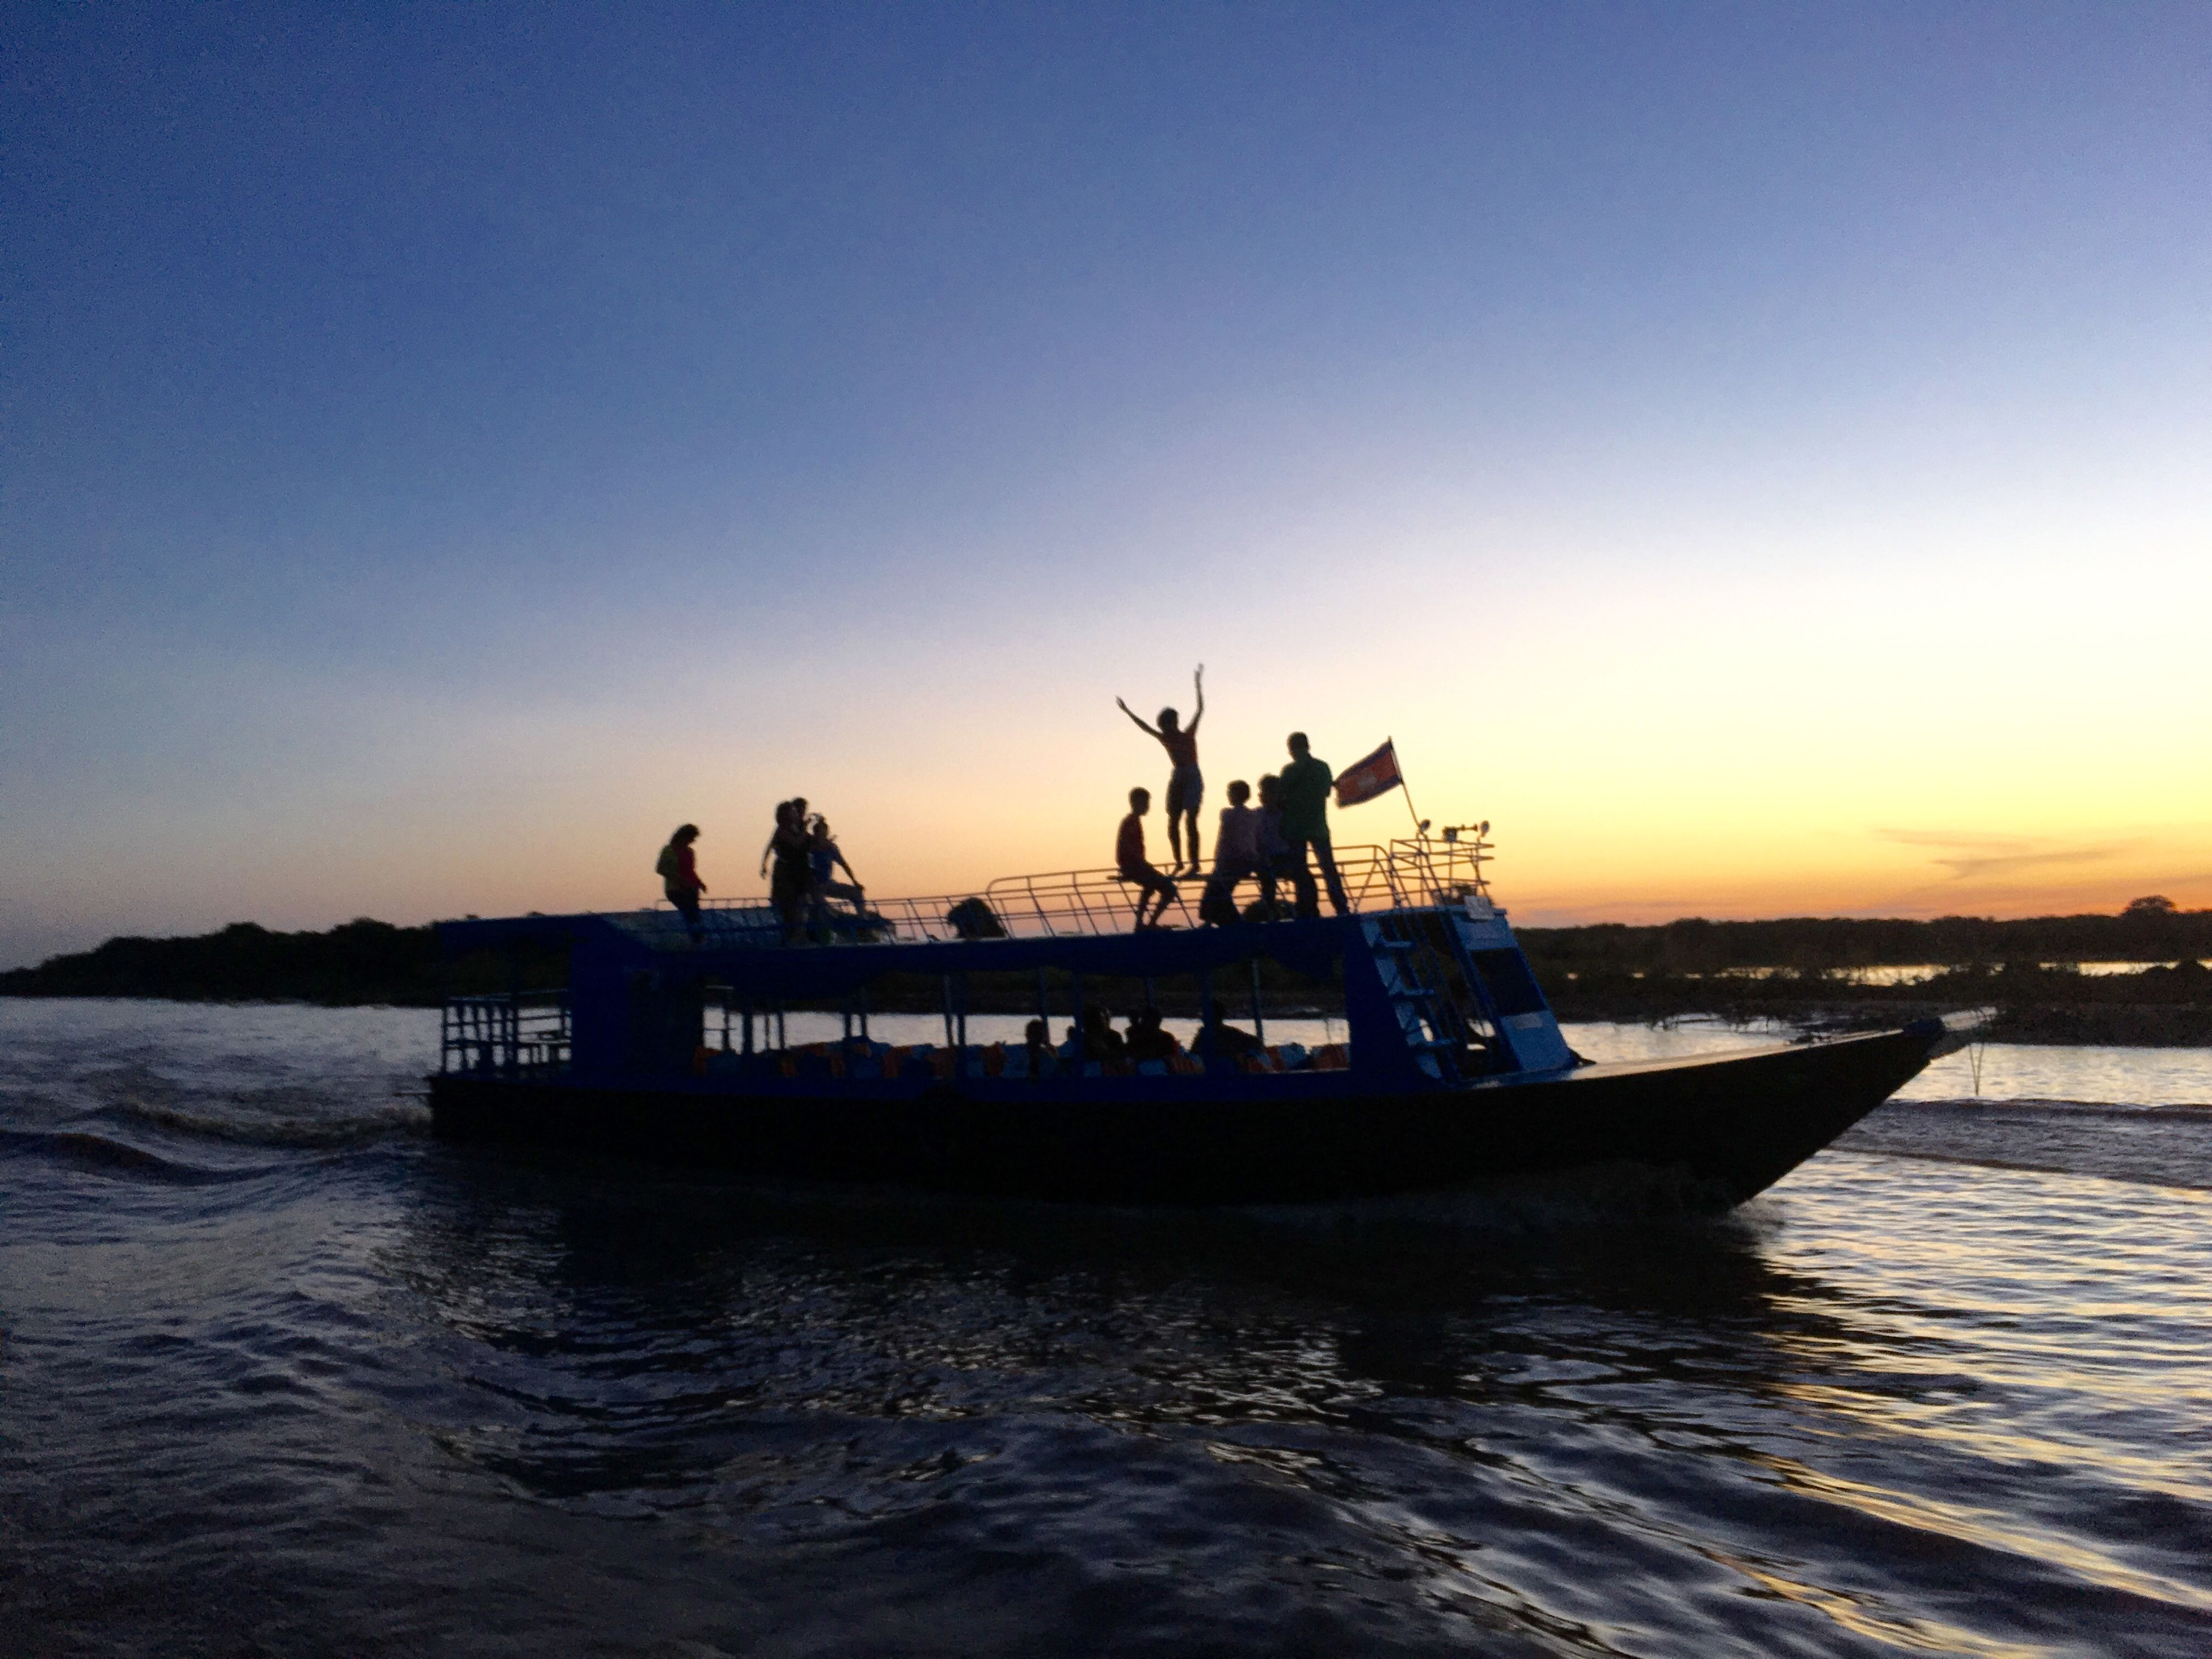 water, silhouette, sunset, transportation, sea, nautical vessel, waterfront, mode of transport, boat, clear sky, copy space, men, nature, sky, scenics, beauty in nature, tranquility, tranquil scene, rippled